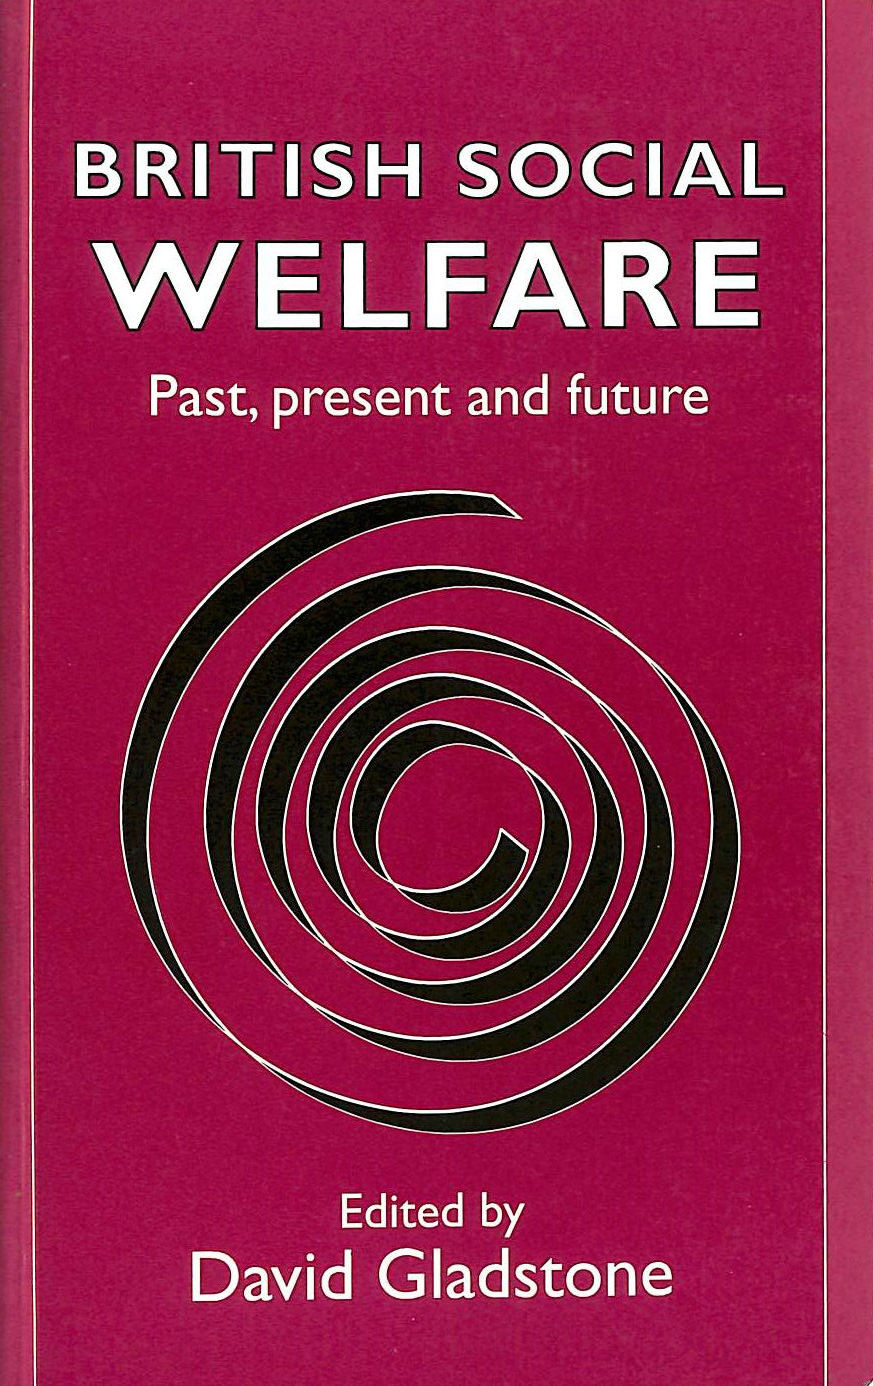 Image for British Social Welfare: Past, Present and Future